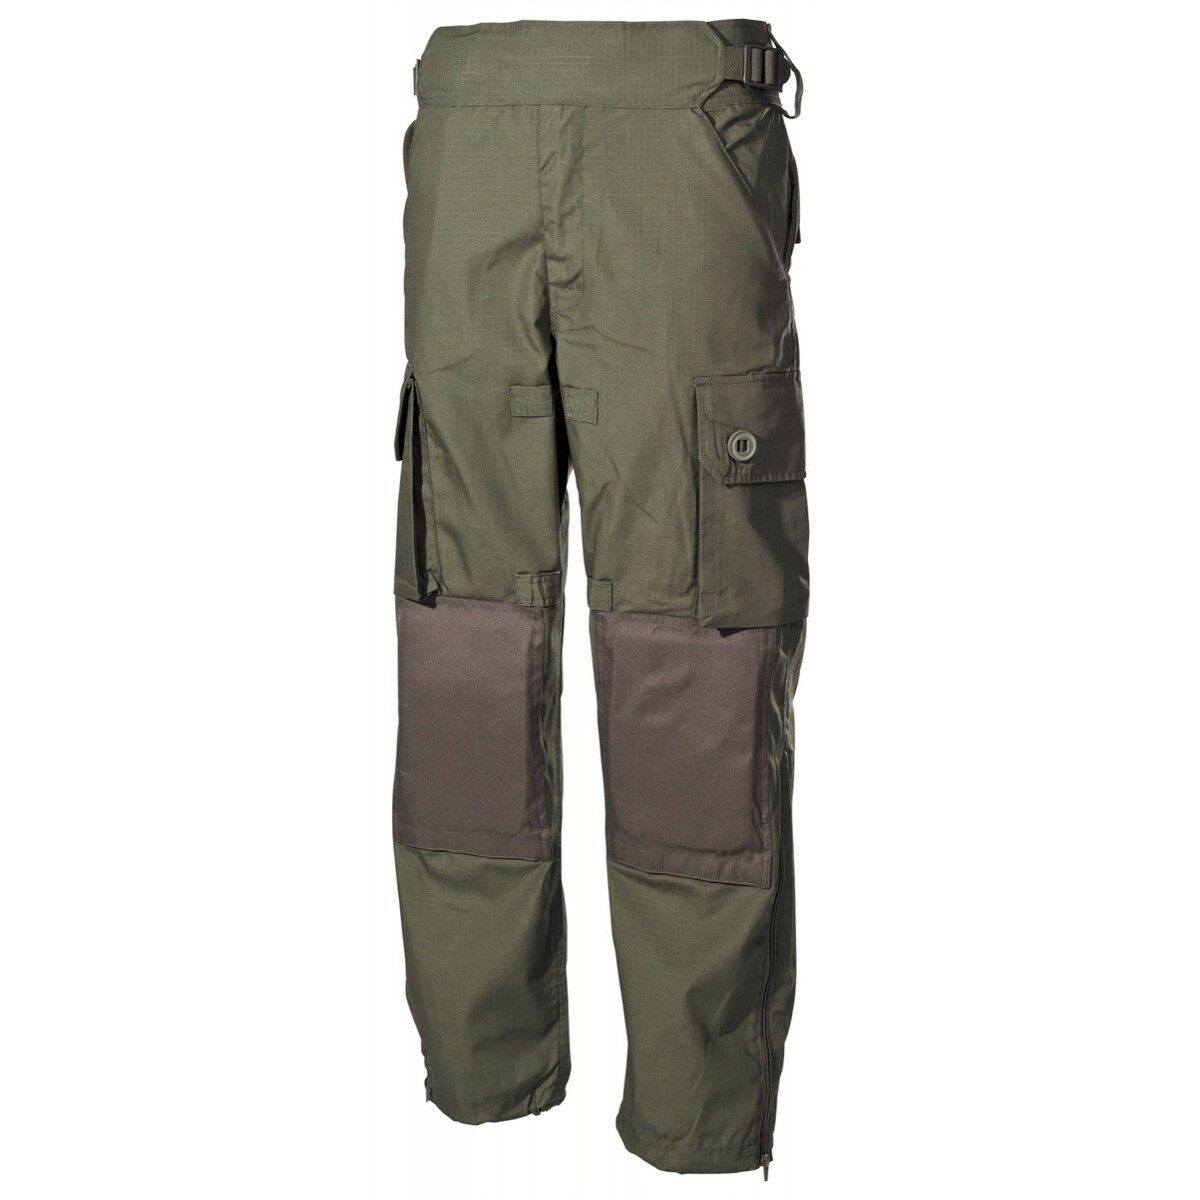 High Quality Tactical Battle Trousers - Comandos - Military Pants -  Olive Green